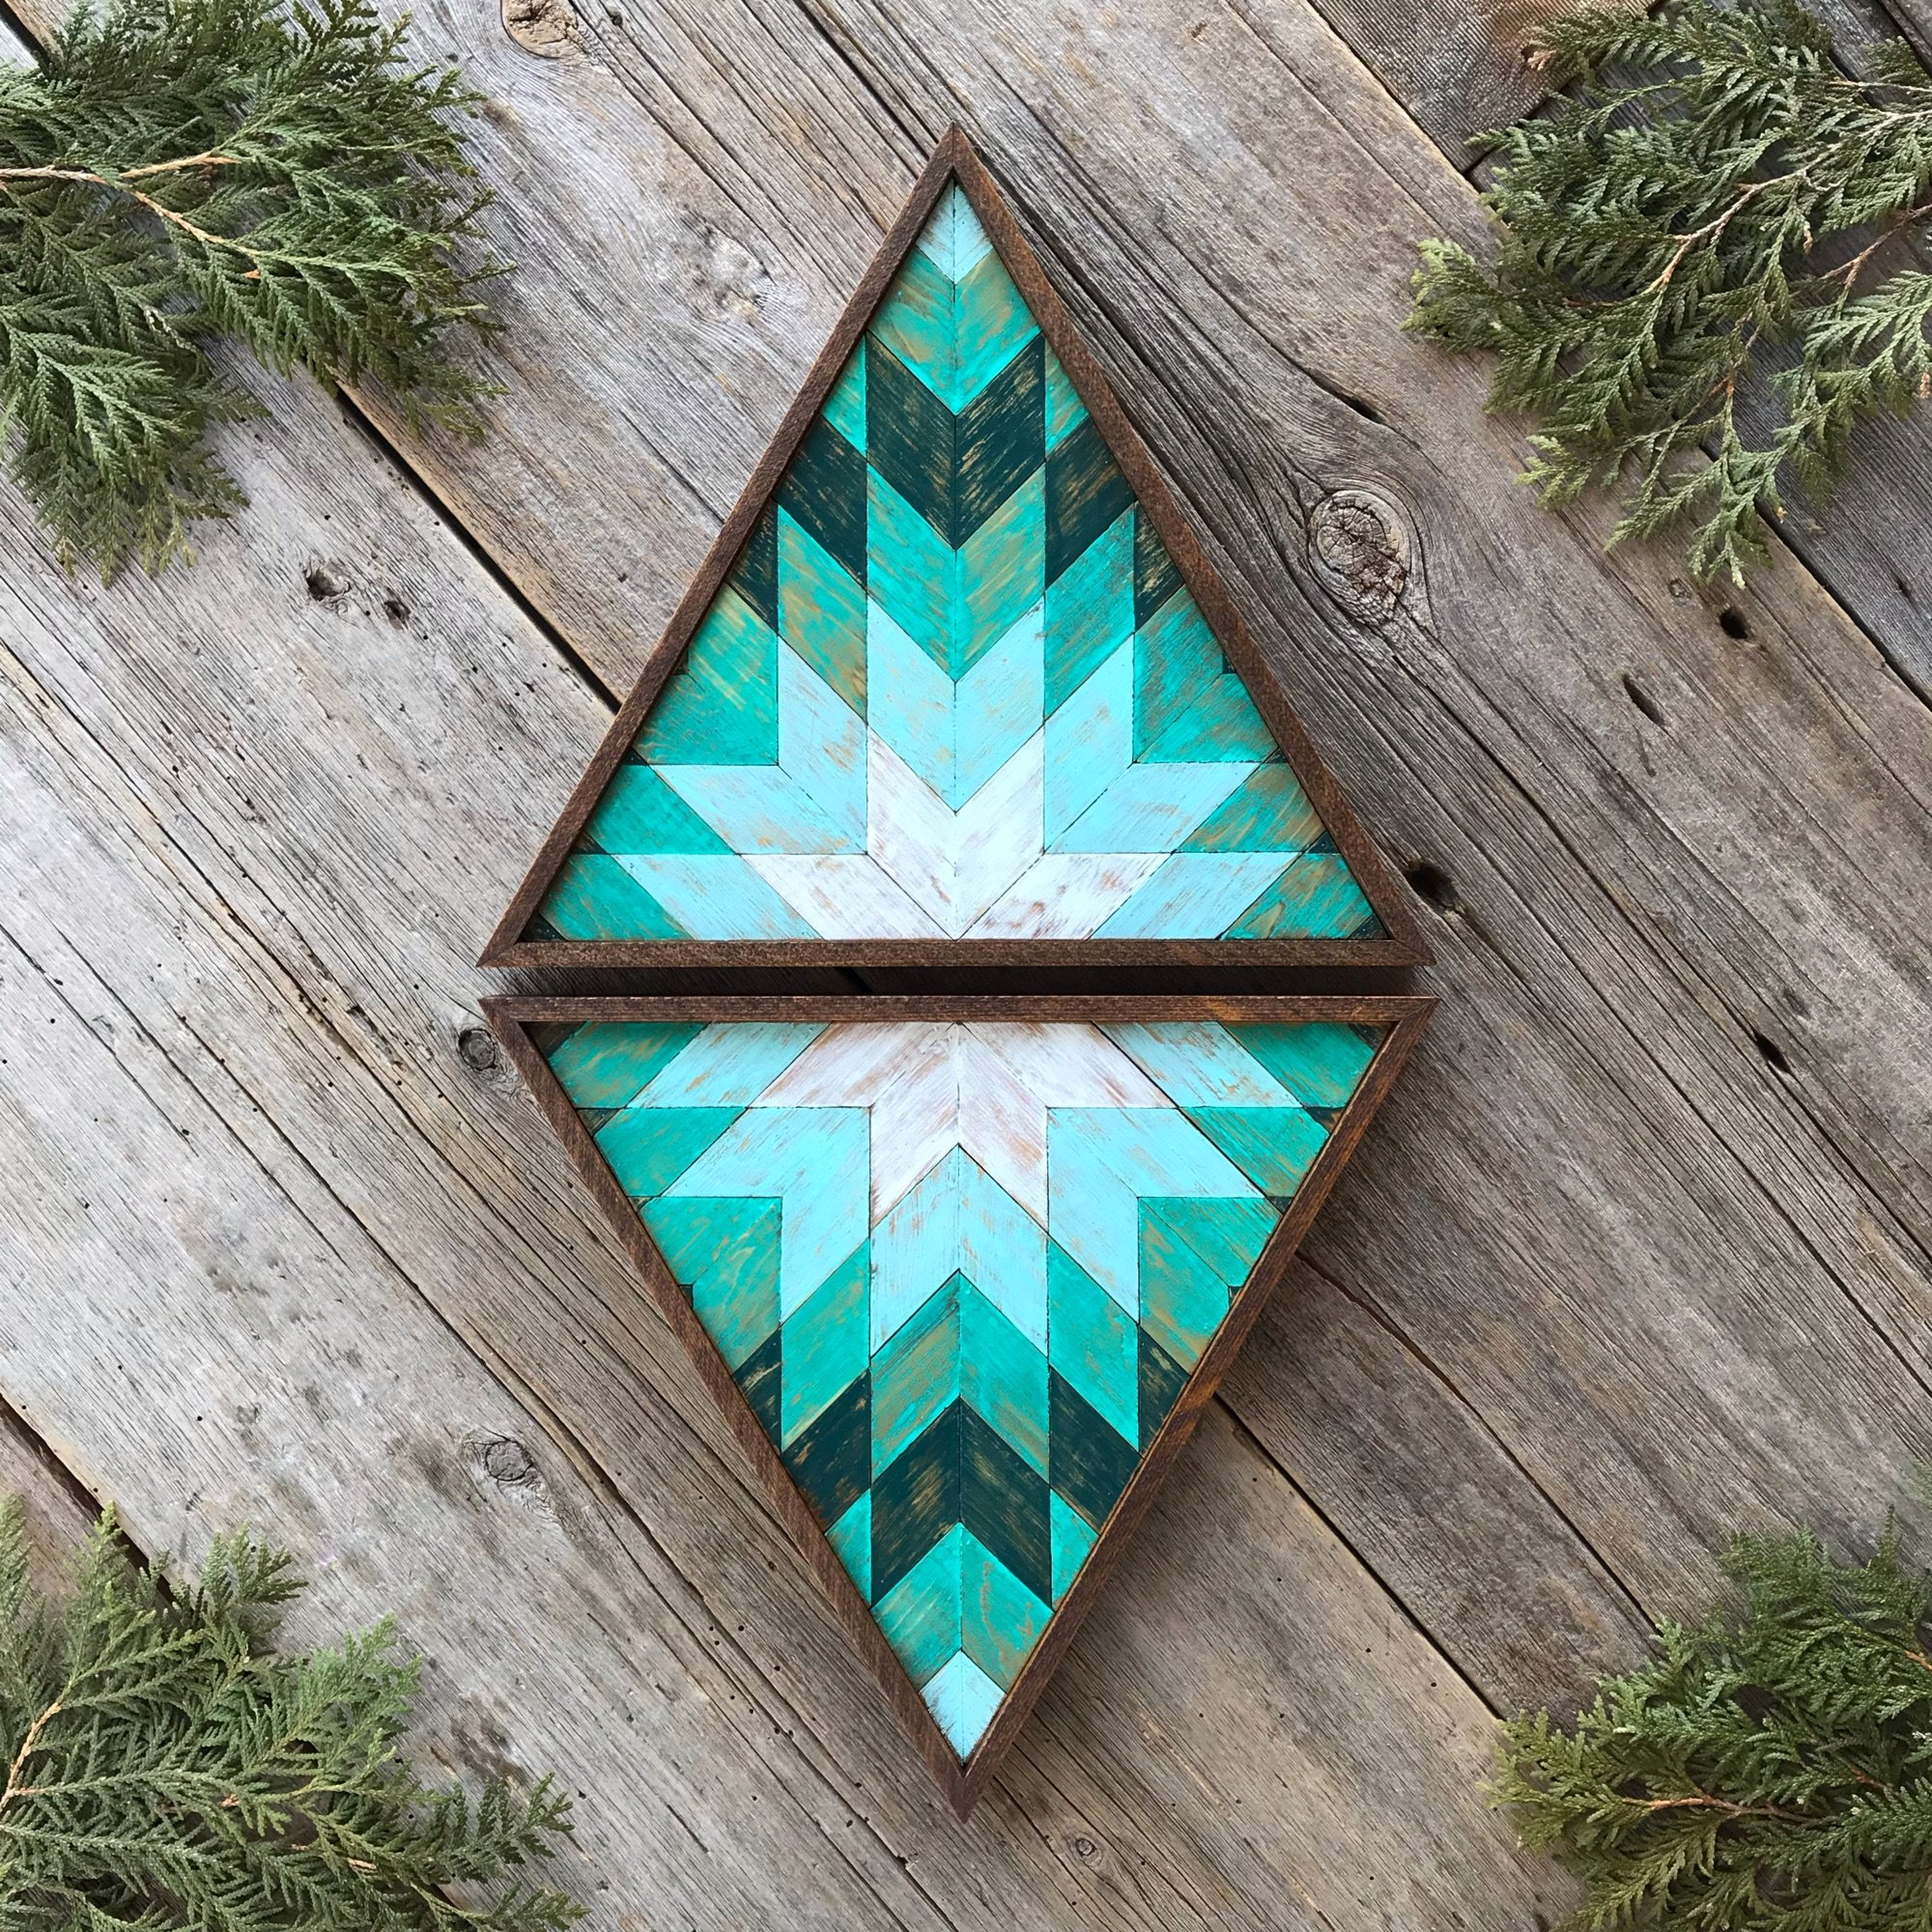 Star, Geometric Patterns, Triangle Wall Decor